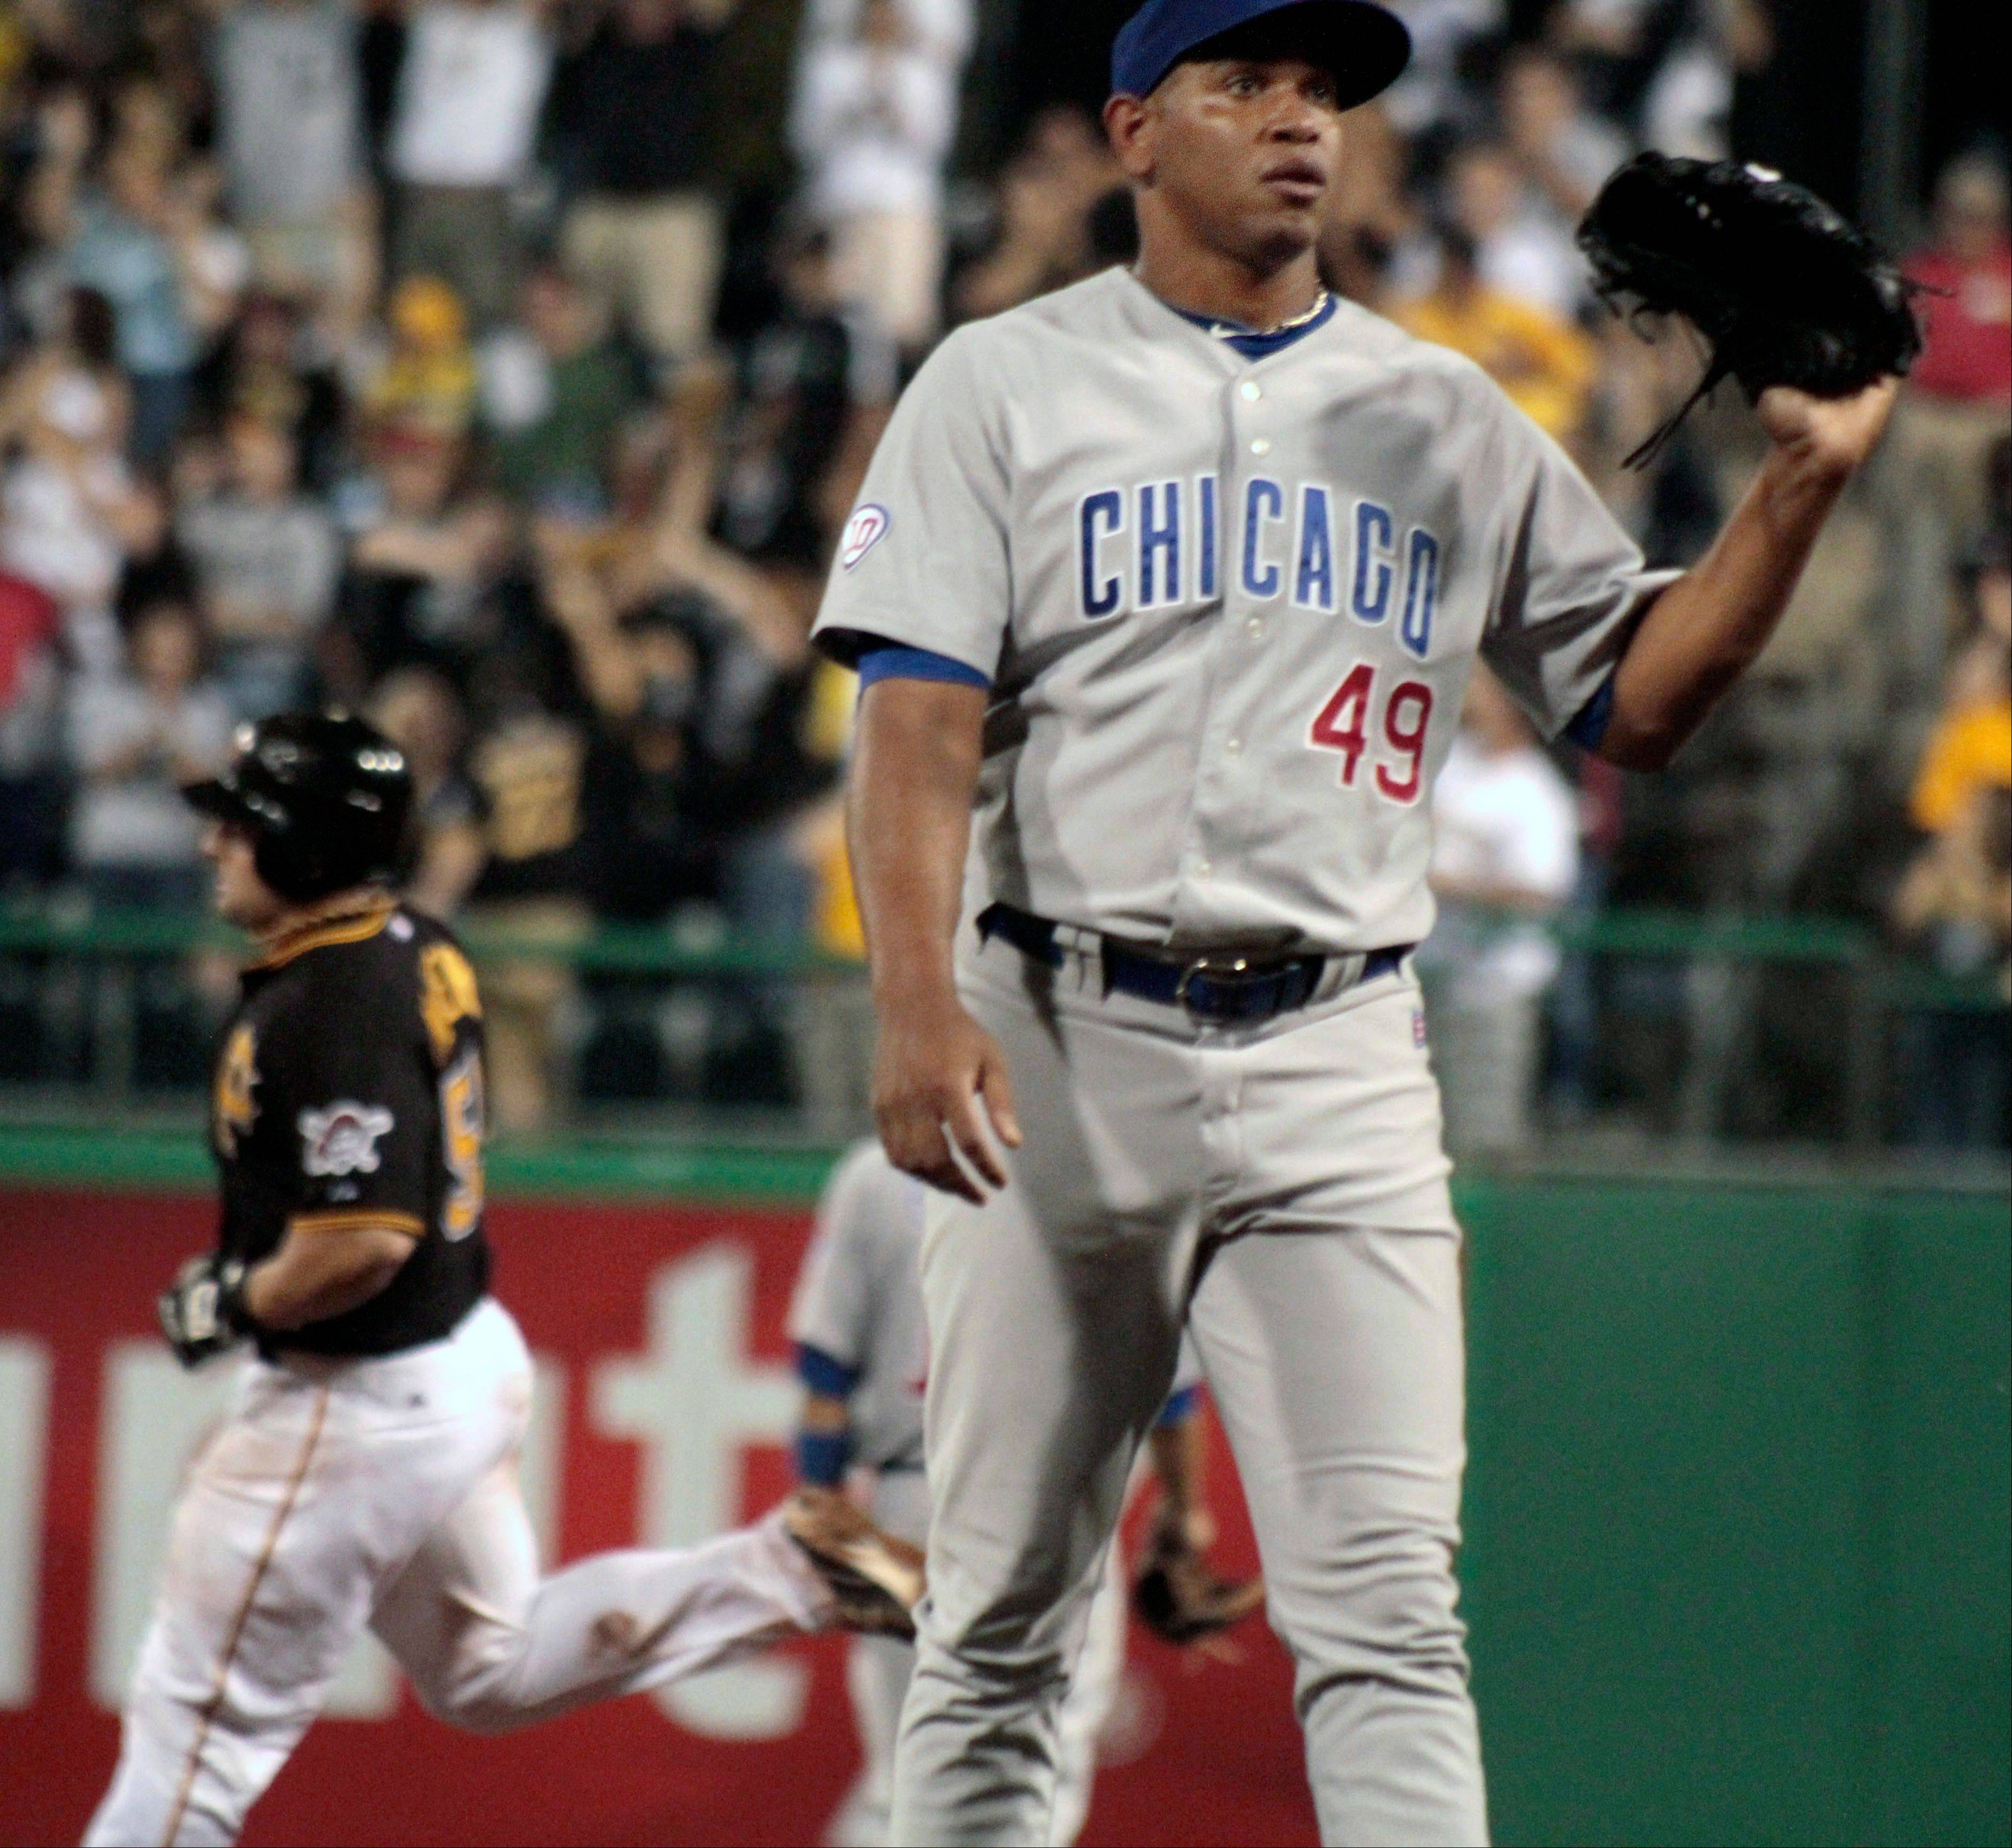 Cubs reliever Carlos Marmol gave up the game-winning 3-run homer to Pittsburgh Pirates' Michael McKenry in the bottom of the eighth Friday and the Cubs fell yet again 7-4